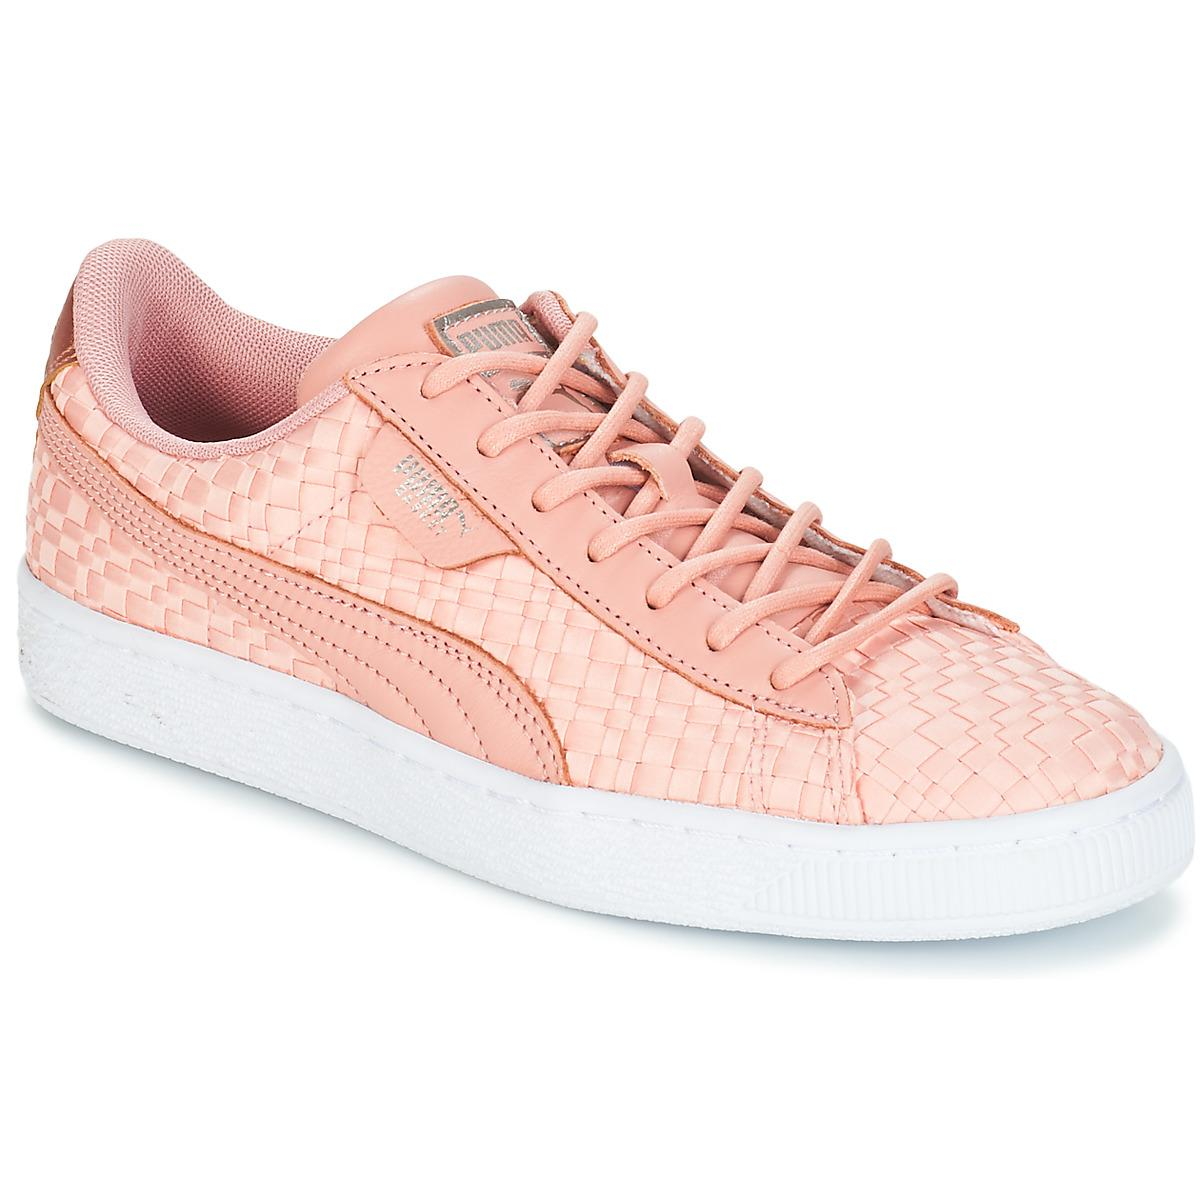 8e9203eef5d Puma Basket Satin Ep Wn s Shoes (trainers) in Pink - Lyst